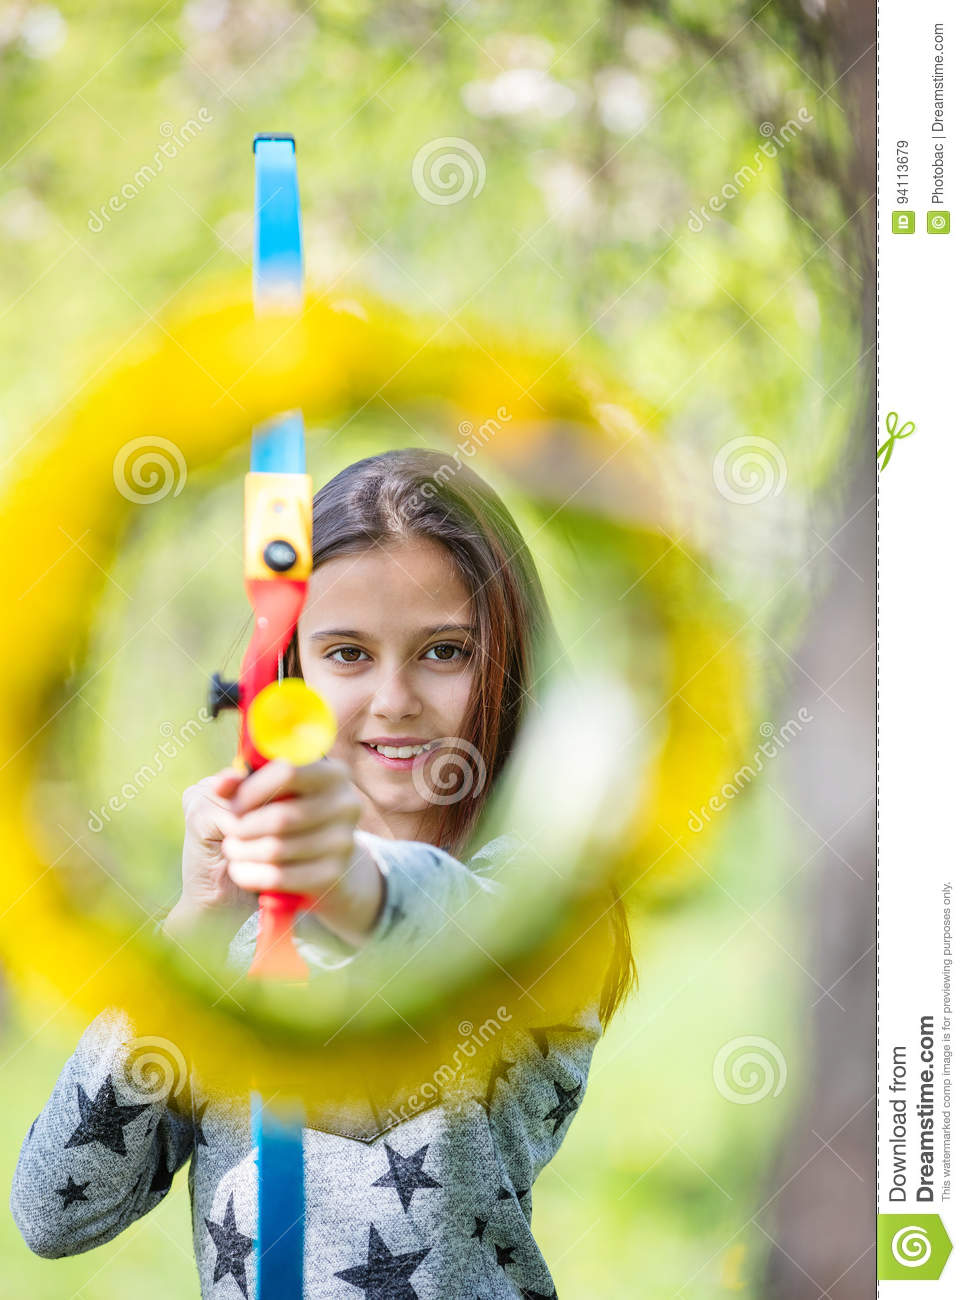 Young girl archer with bow aiming through flower wreath